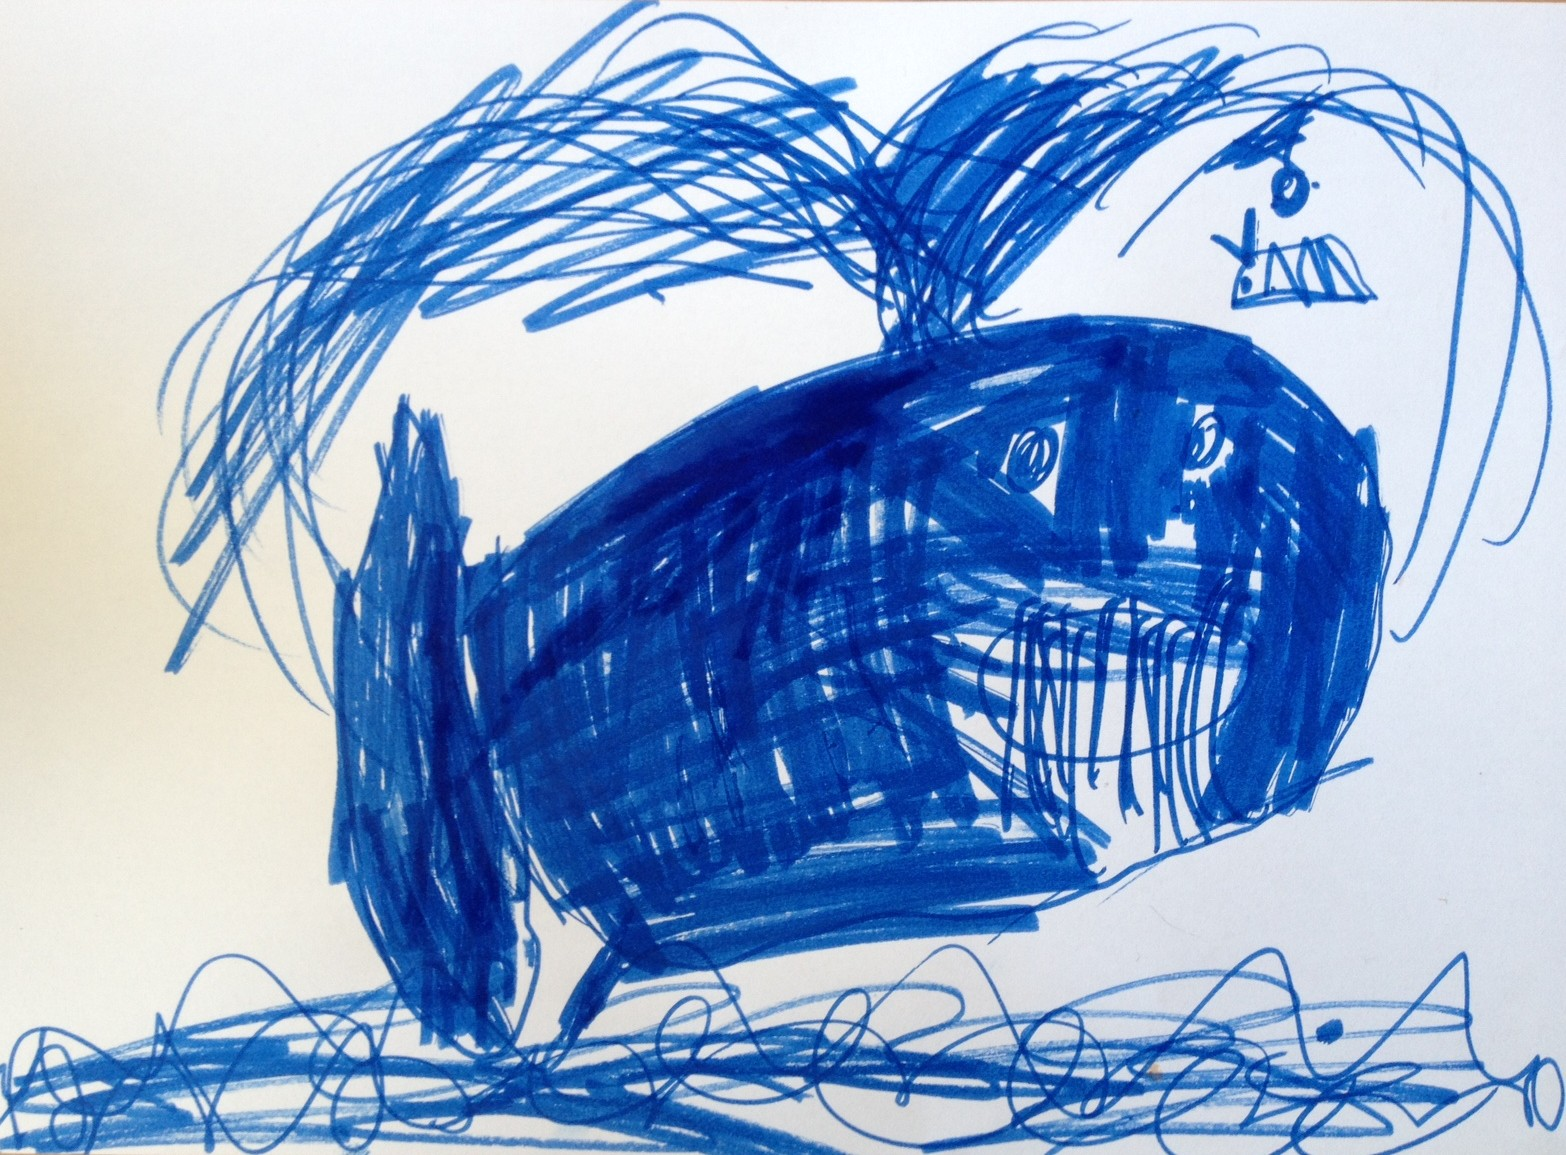 'A humpback whale spraying out water' by Frances Williams, Age 6.